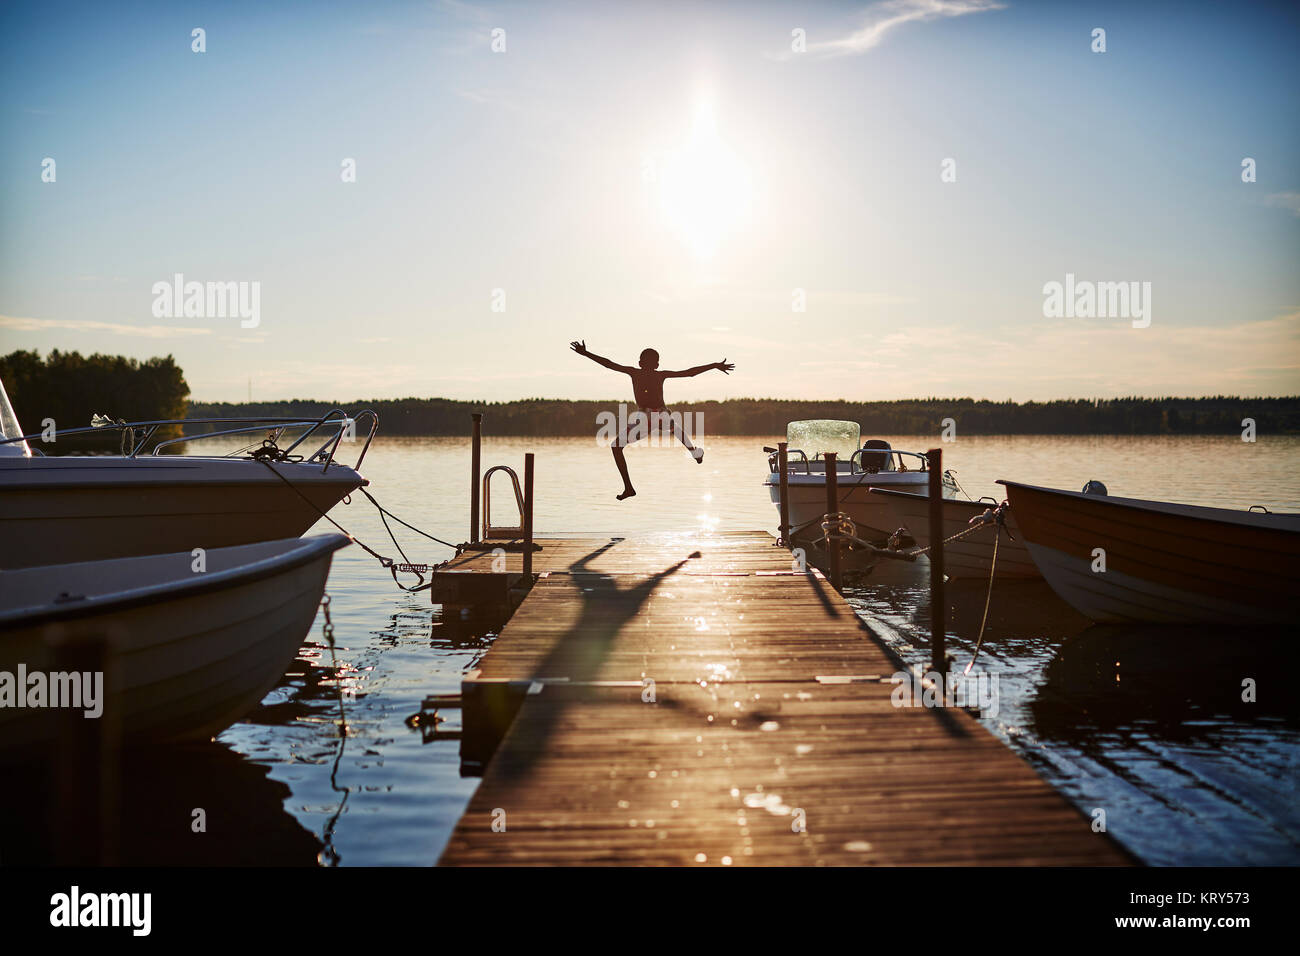 Boy jumping on a pier Photo Stock